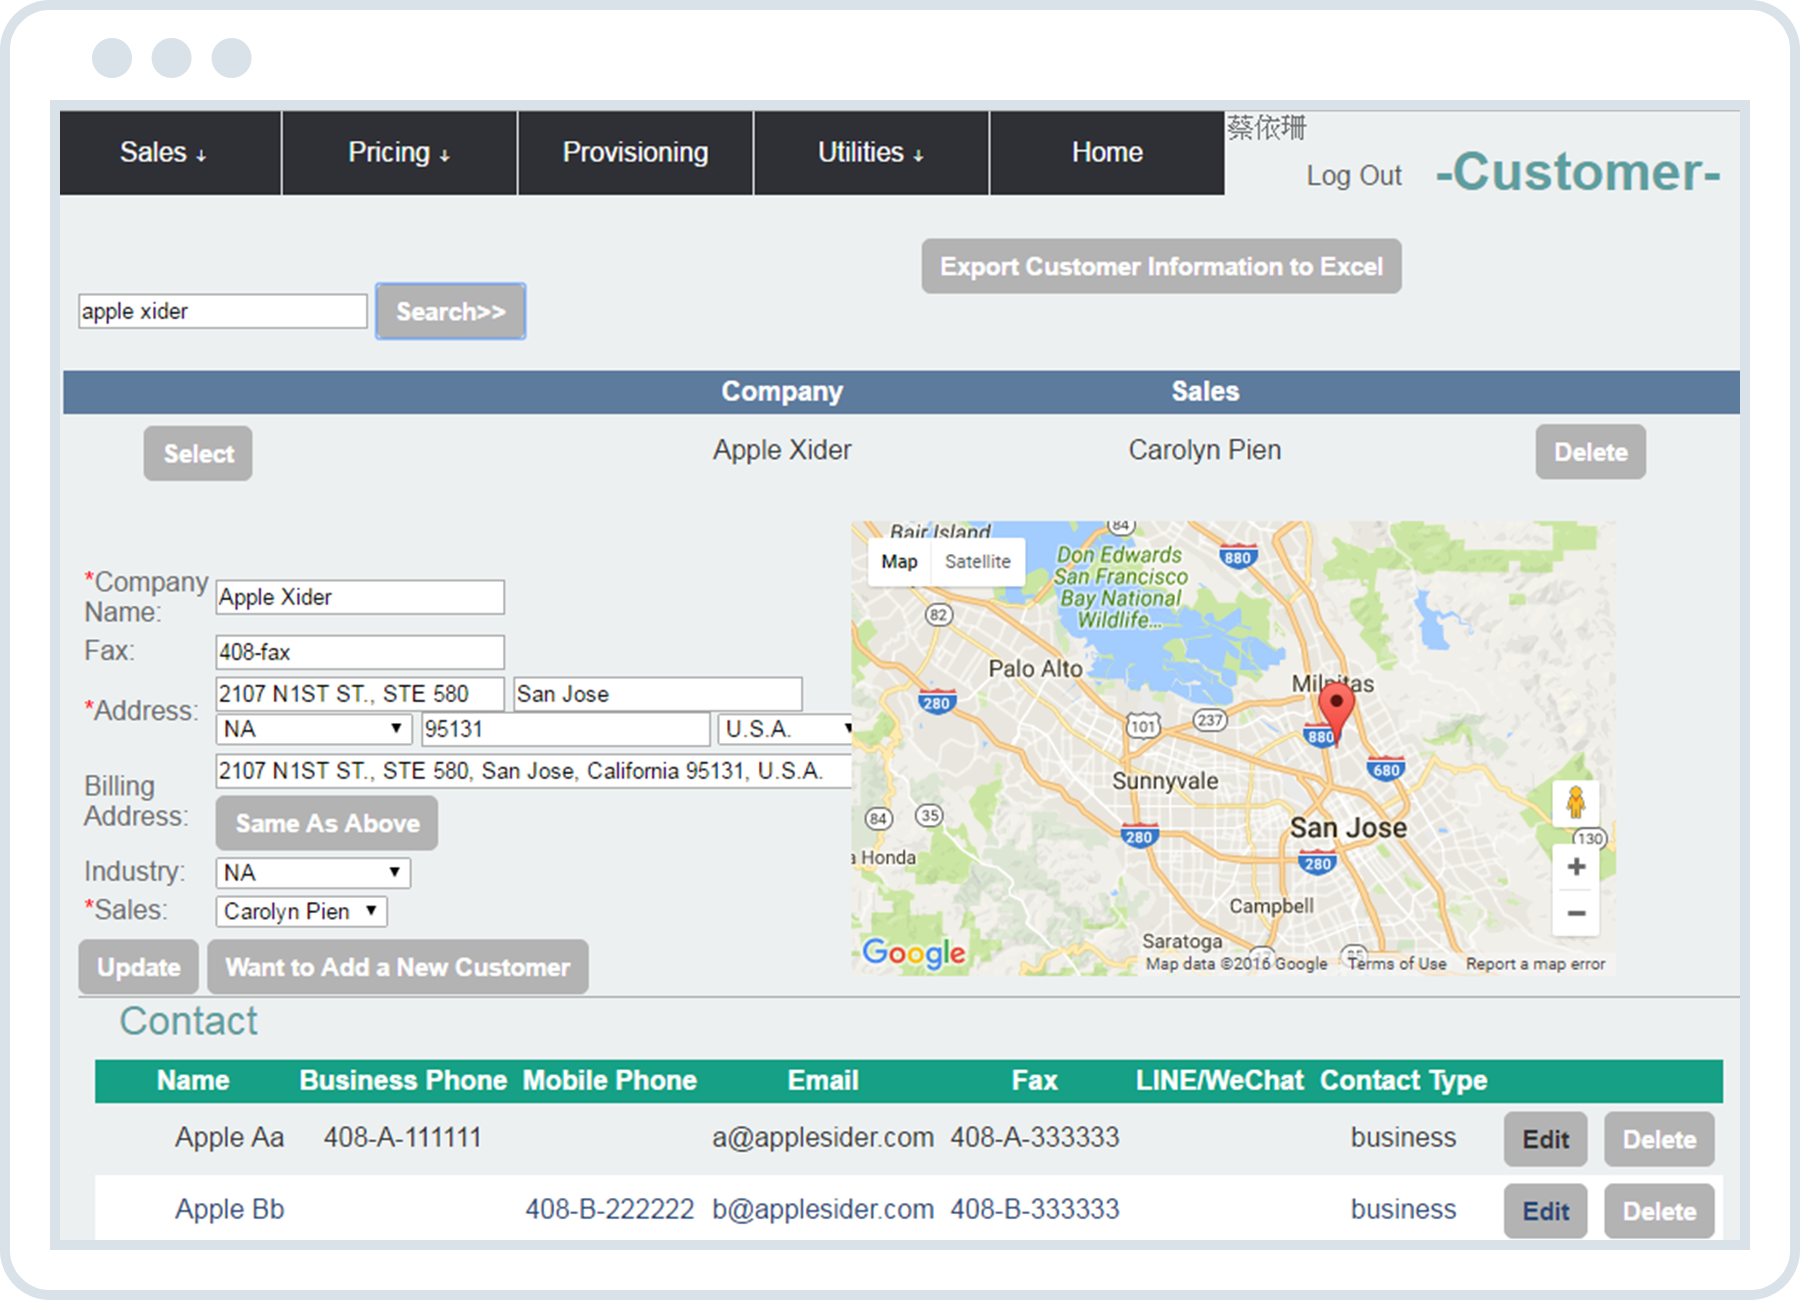 an screenshot of the project Enterprise Integrated Portal